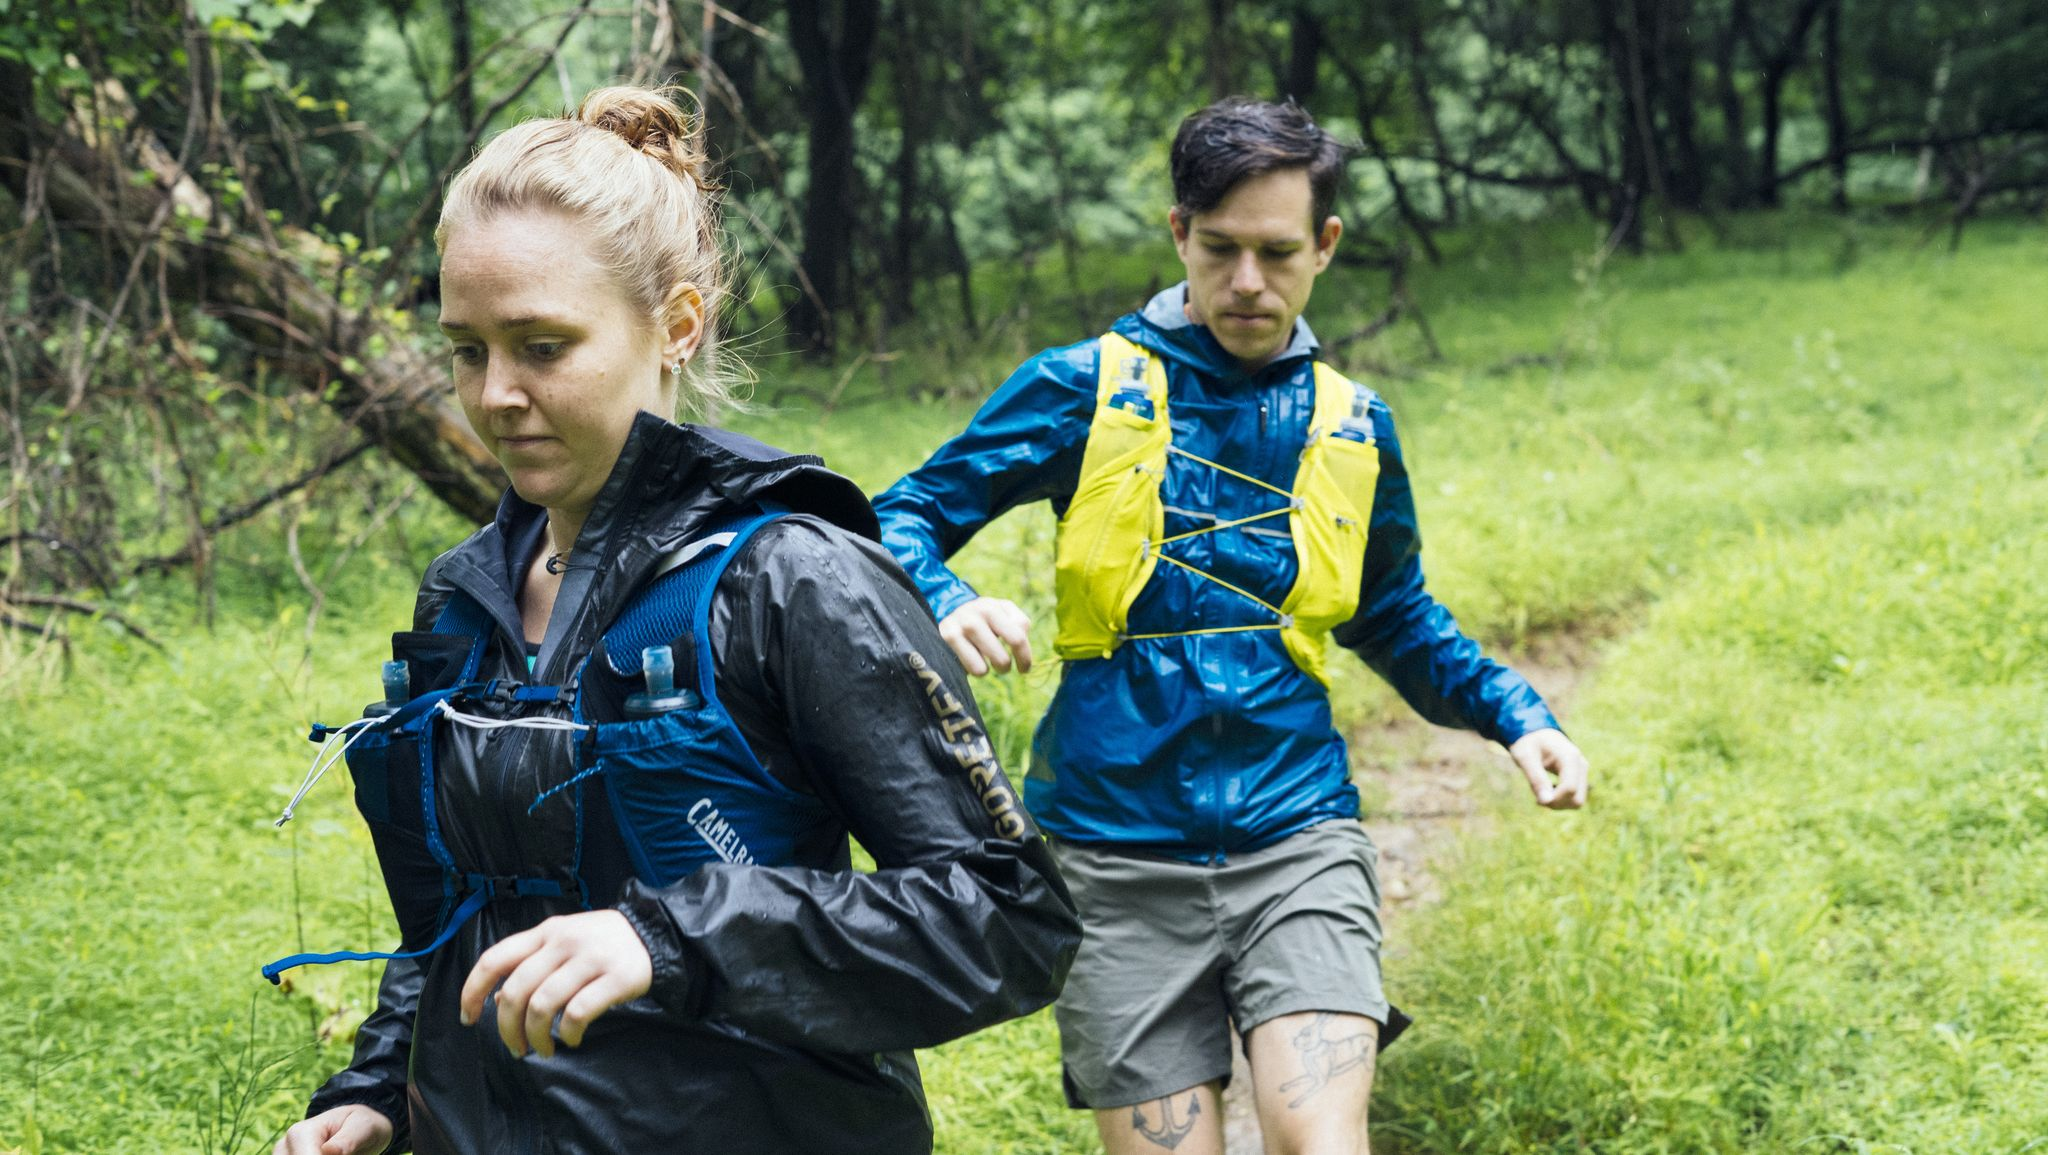 12 Hydration Packs for Your Next Trail Run